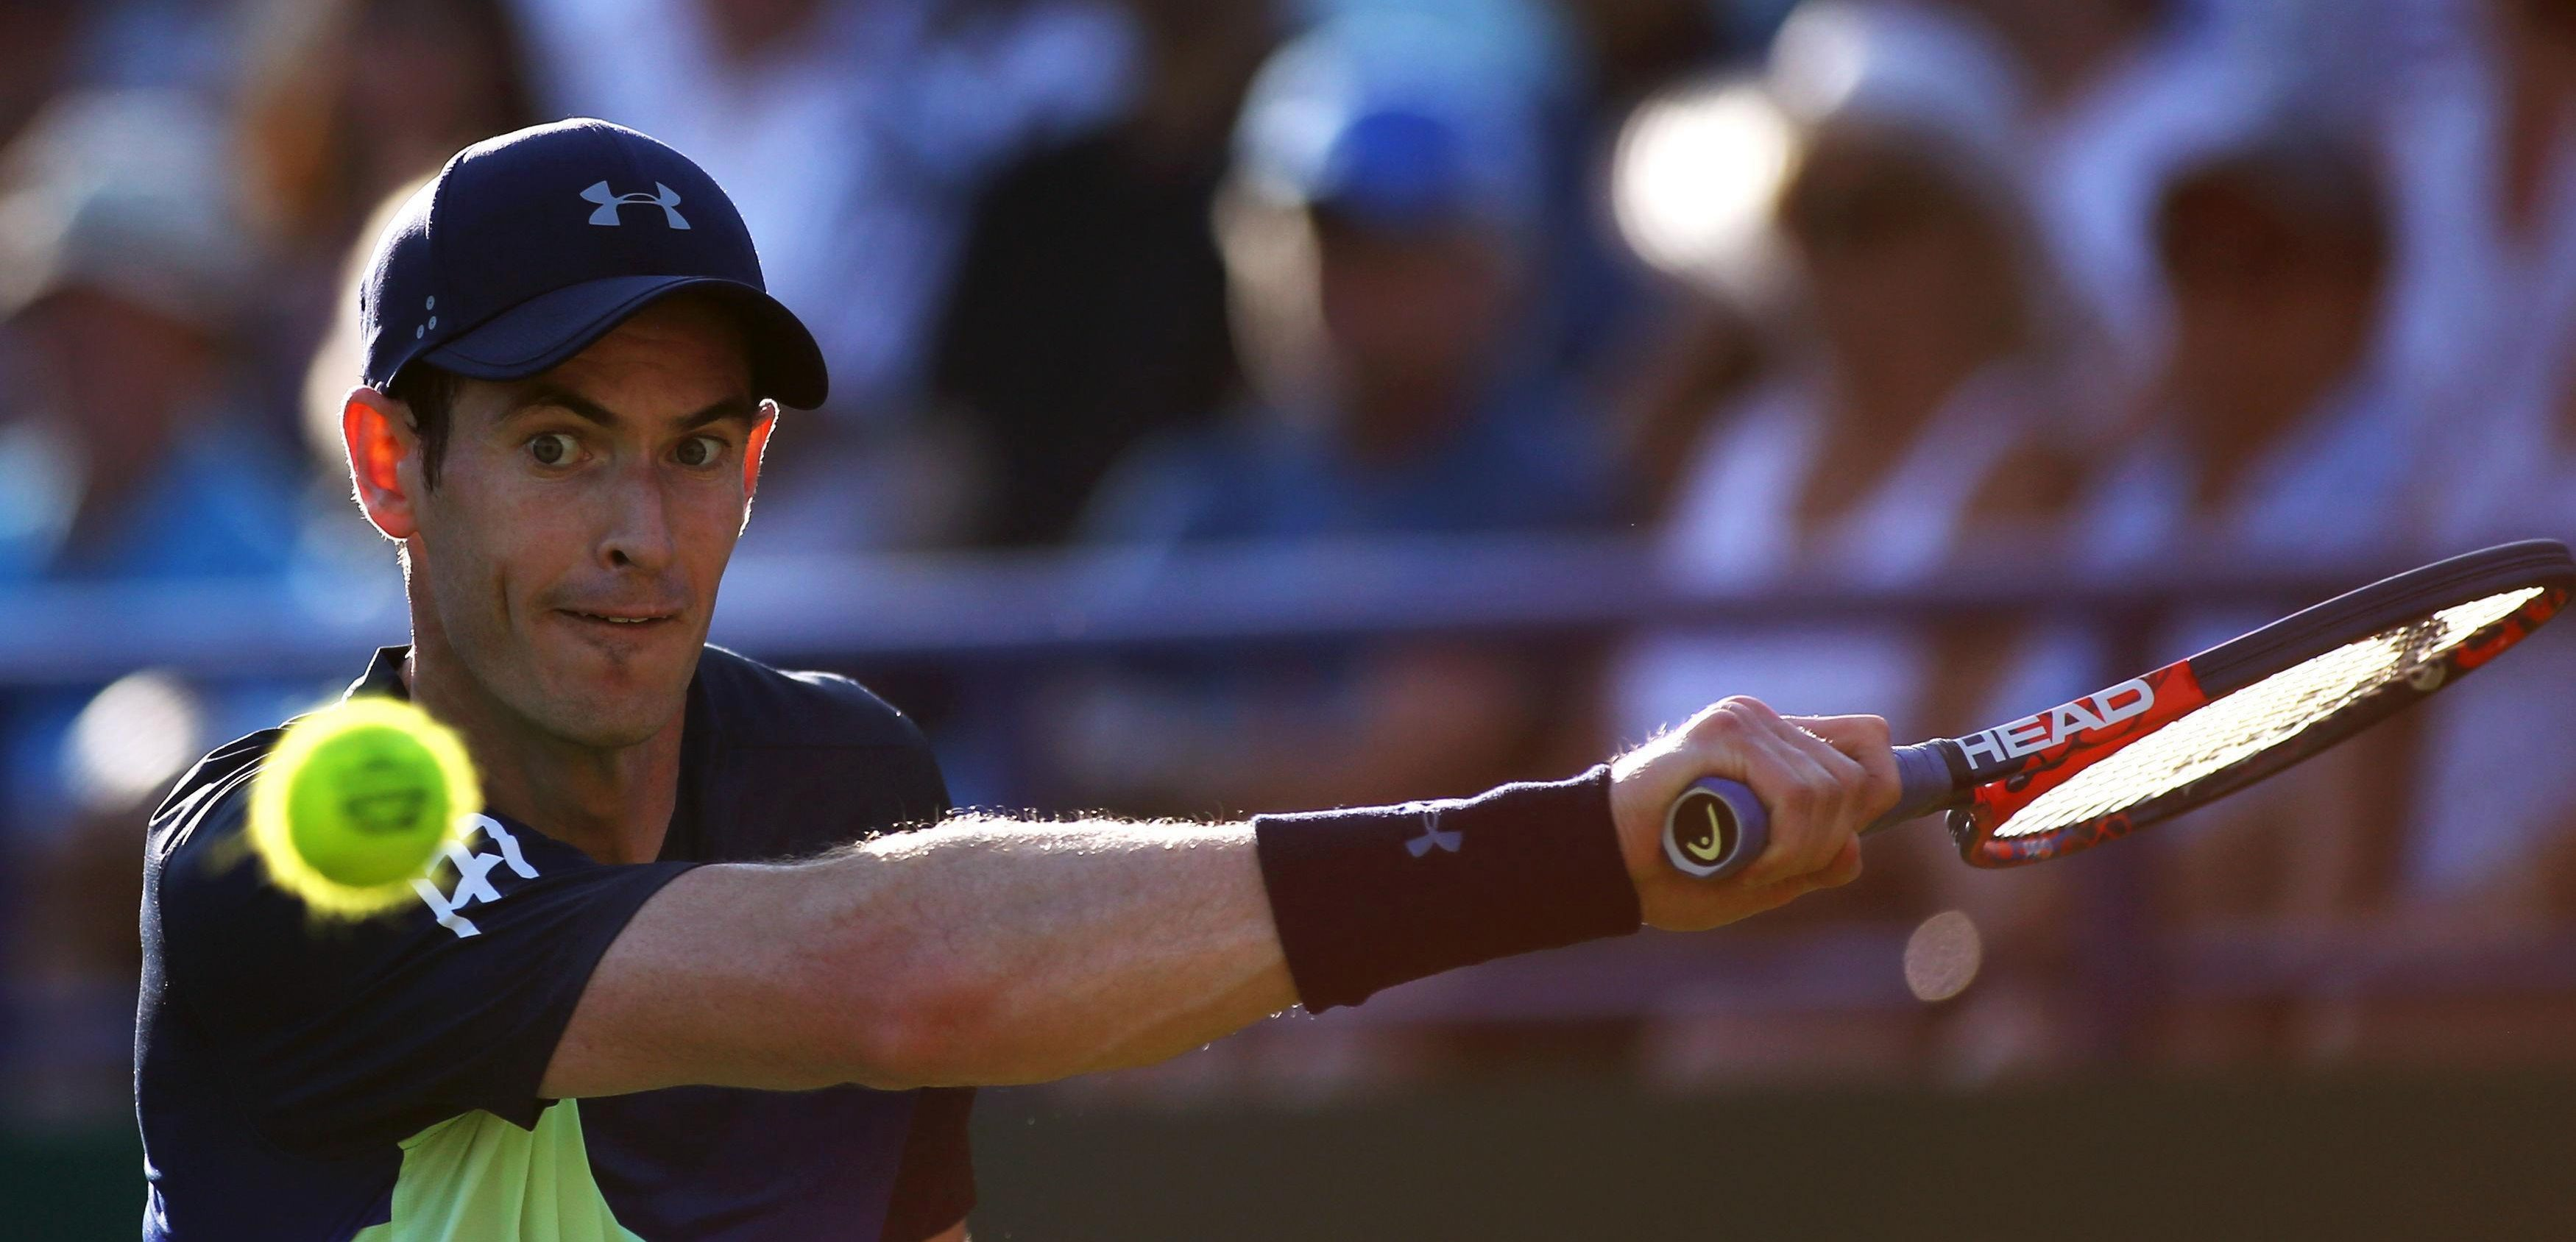 Andy Murray admits he still has concerns about his fitness despite winning his second comeback match against another injury-hit ace, Stan Wawrinka